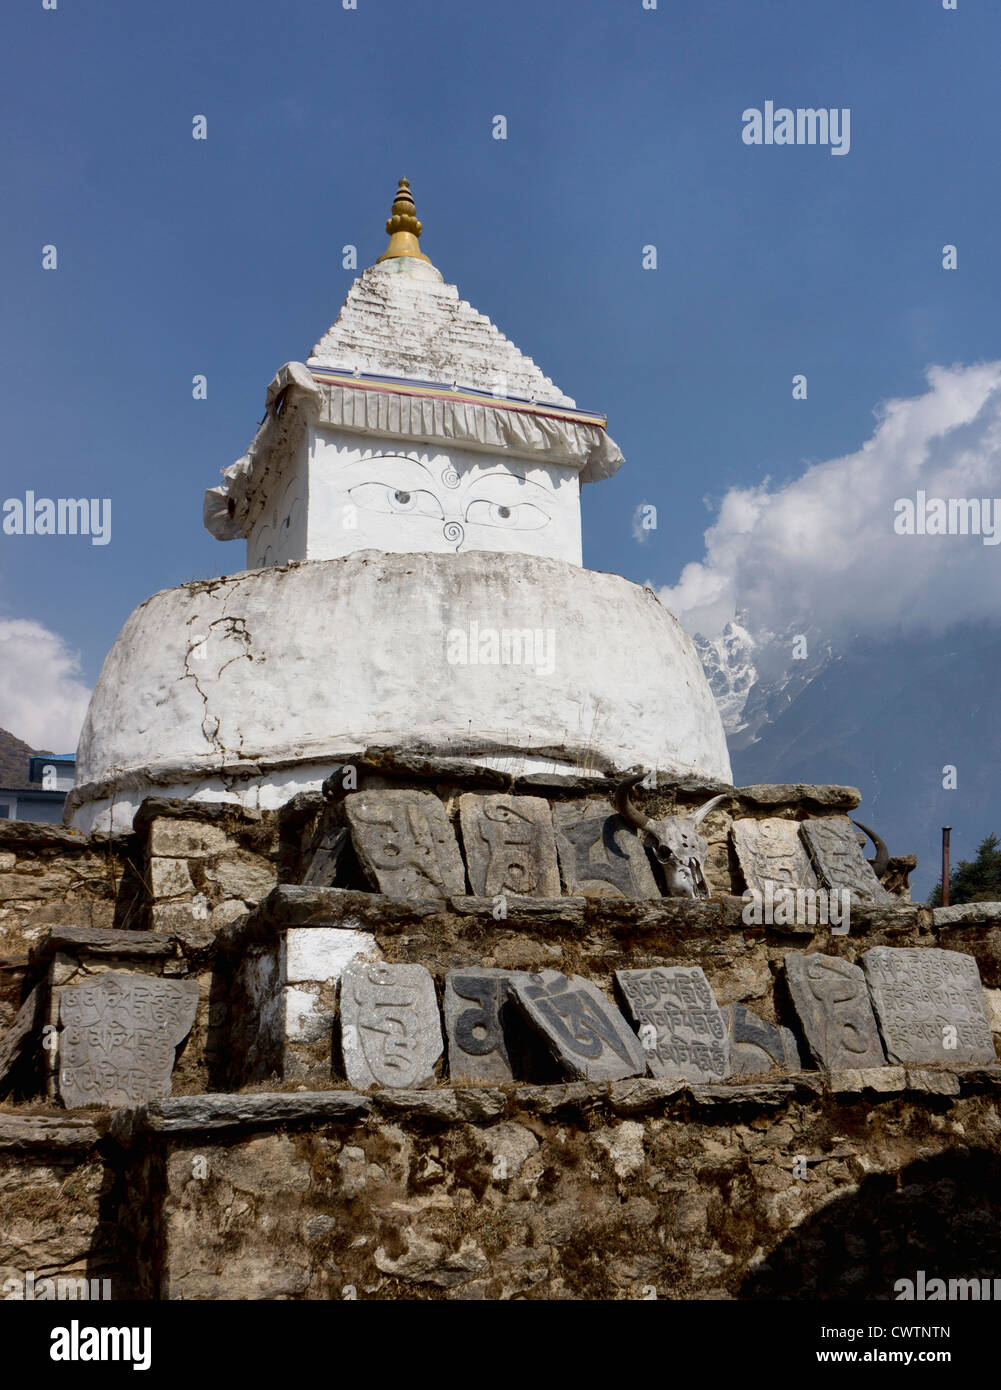 a stupa above Namche Bazaar in Nepal - Stock Image